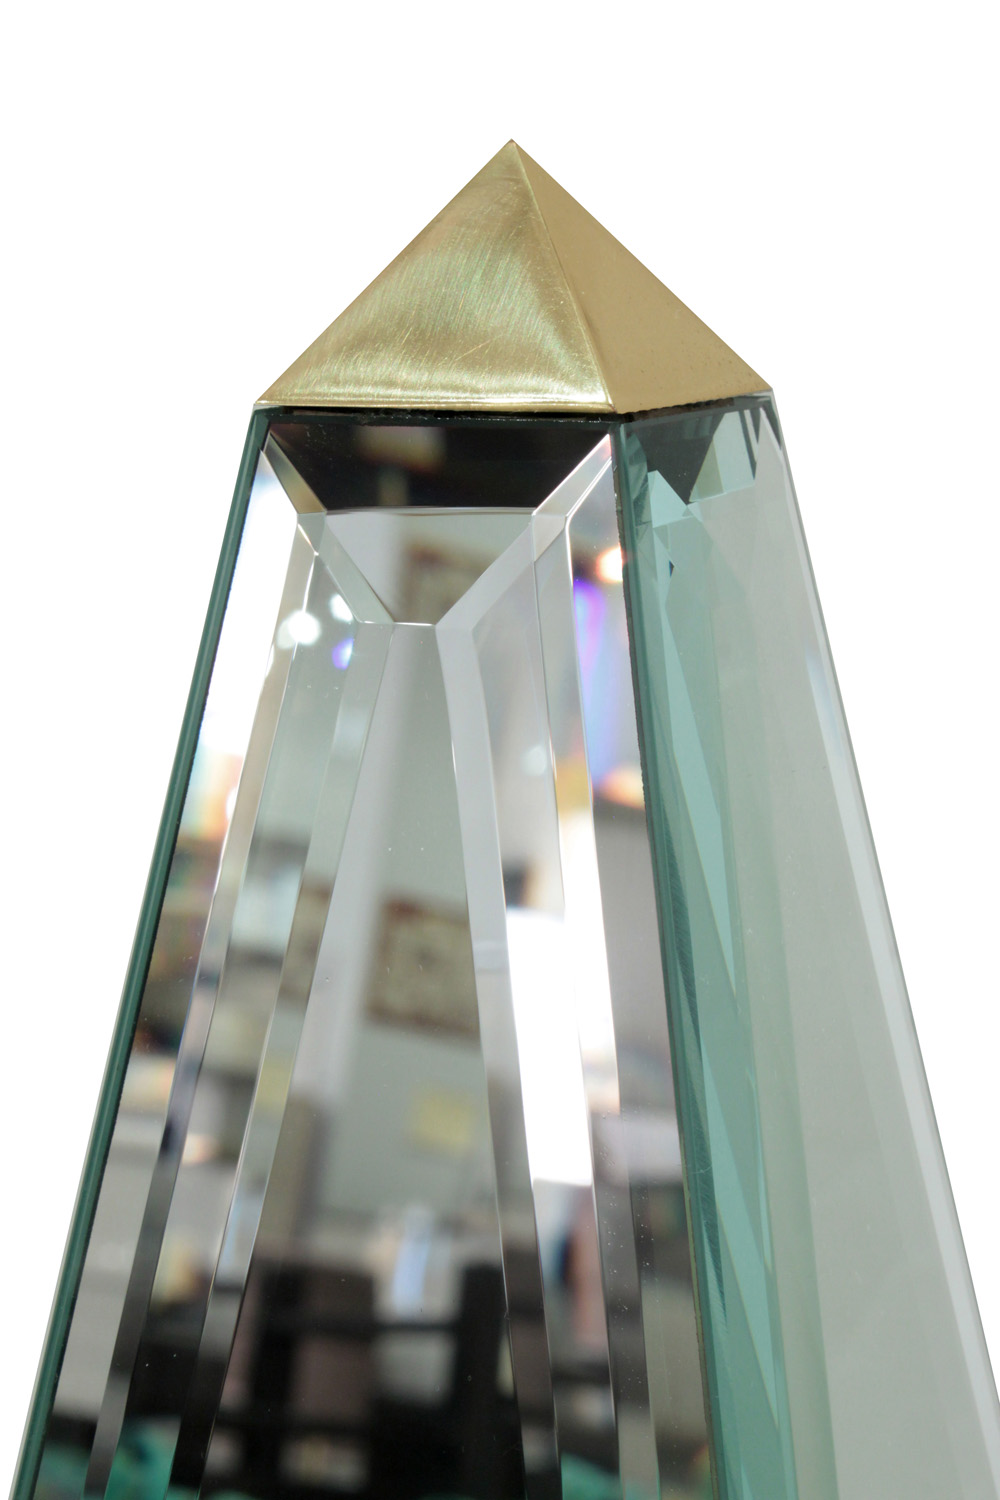 70's 55 lrg pr mirrored obelisks sculpture88 detail1 hires.jpg